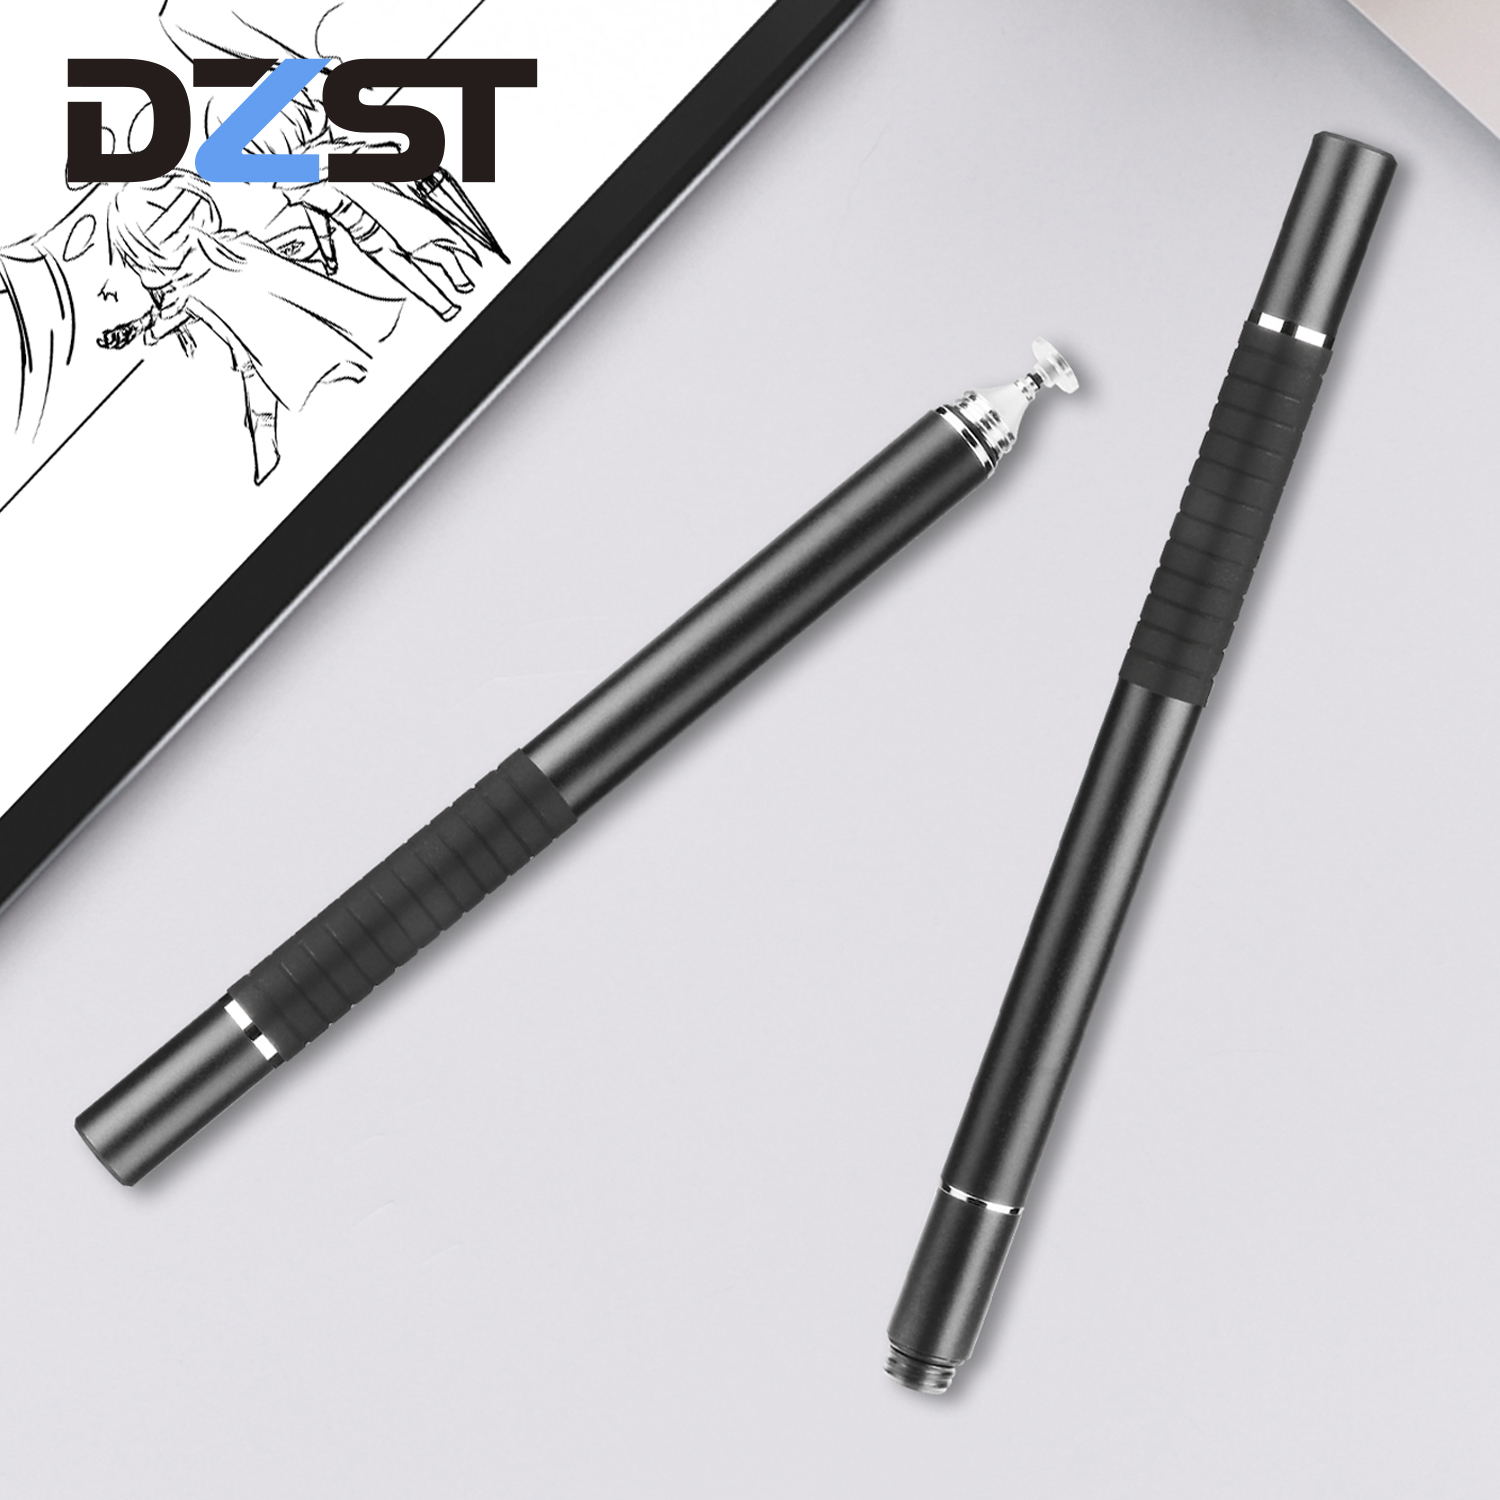 DZLST Stylus Pen High Quality Dual Use Screen Touch Pen Capacitive Touch Pen For IPad IPhone Samsung Xiaomi Huawei Tablet Pen